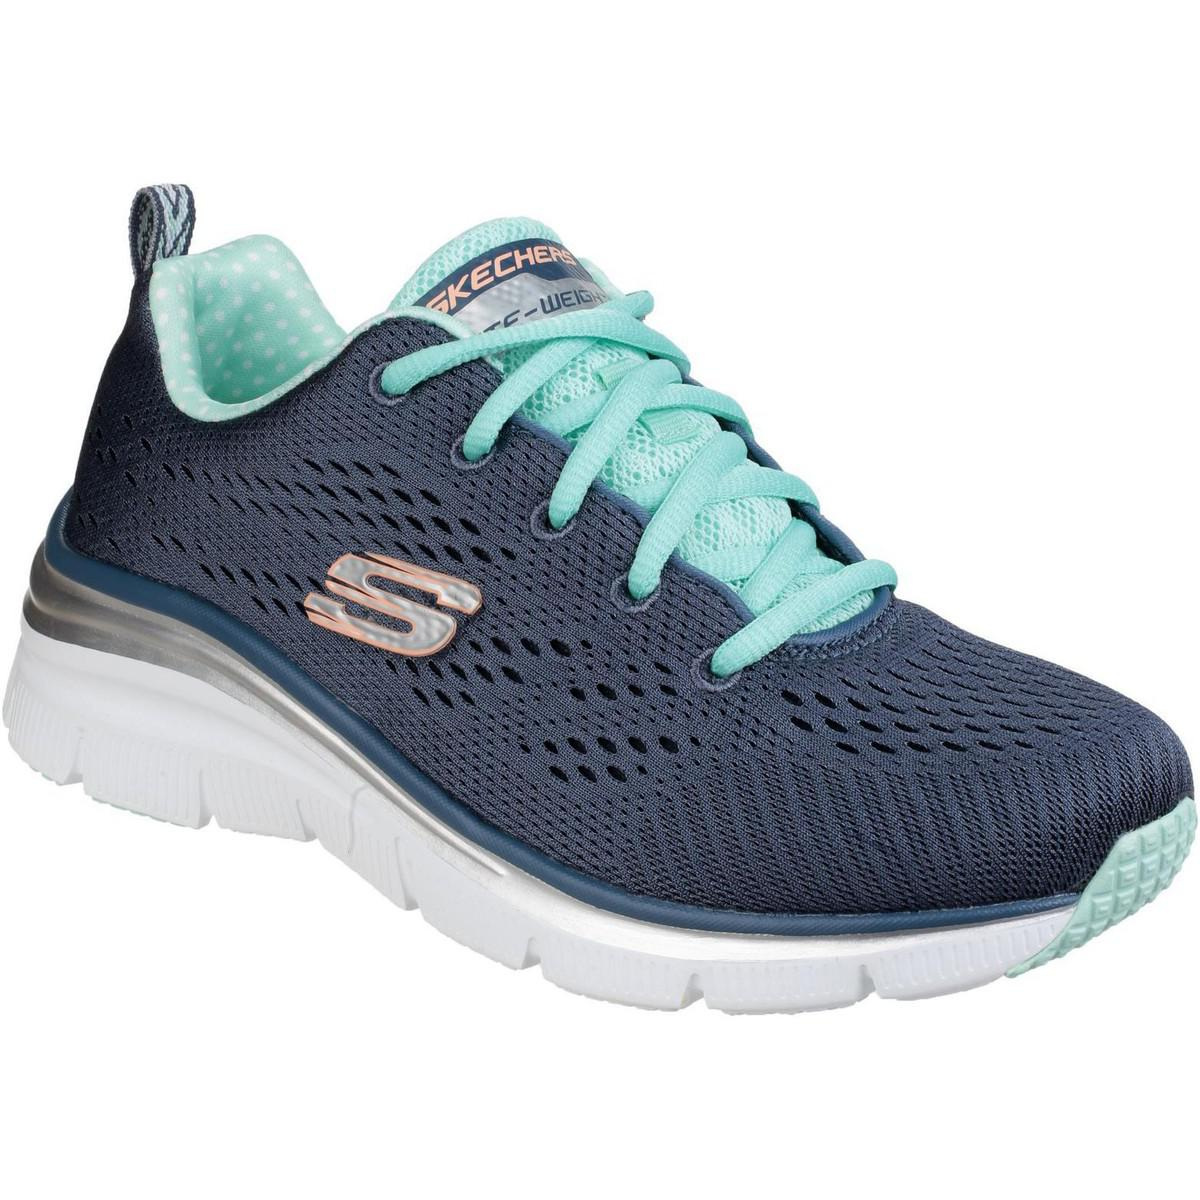 c203e9ed9c830 Skechers Sk12704 Fashion Fit - Statement Piece Women's Shoes ...